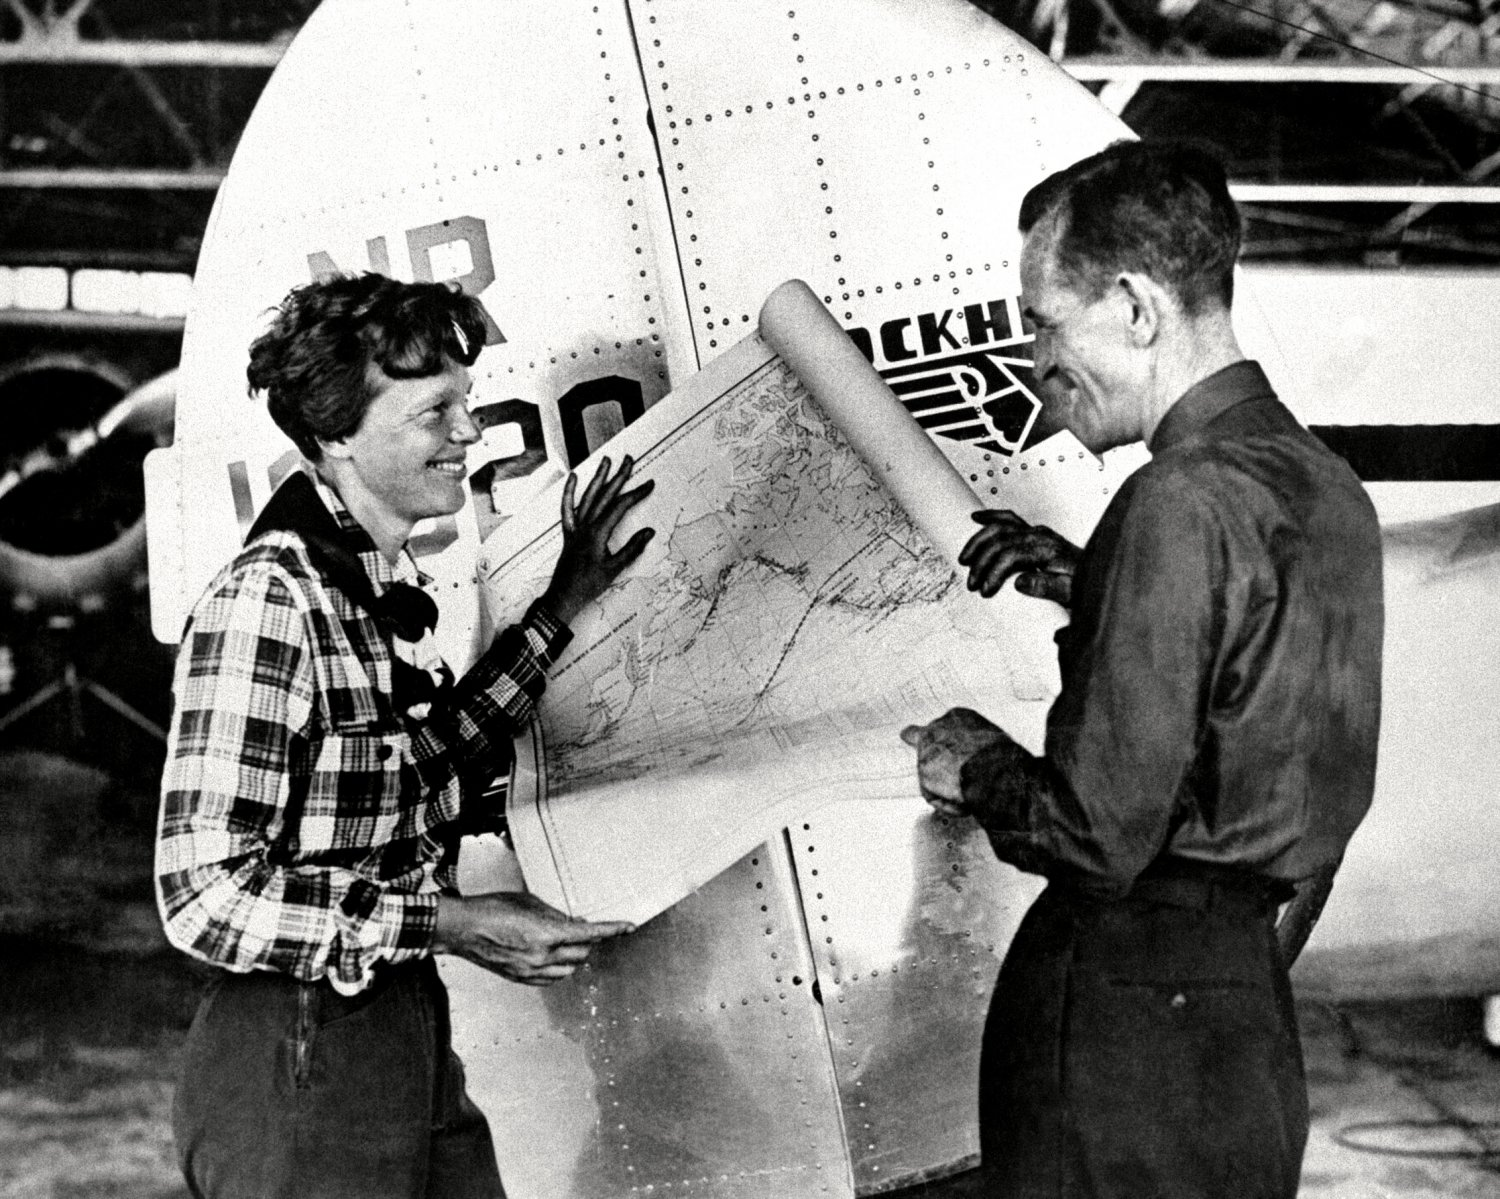 PILOT AMELIA EARHART WITH FRED NOONAN WITH MAP OF PACIFIC - 8X10 PHOTO (BB-186)